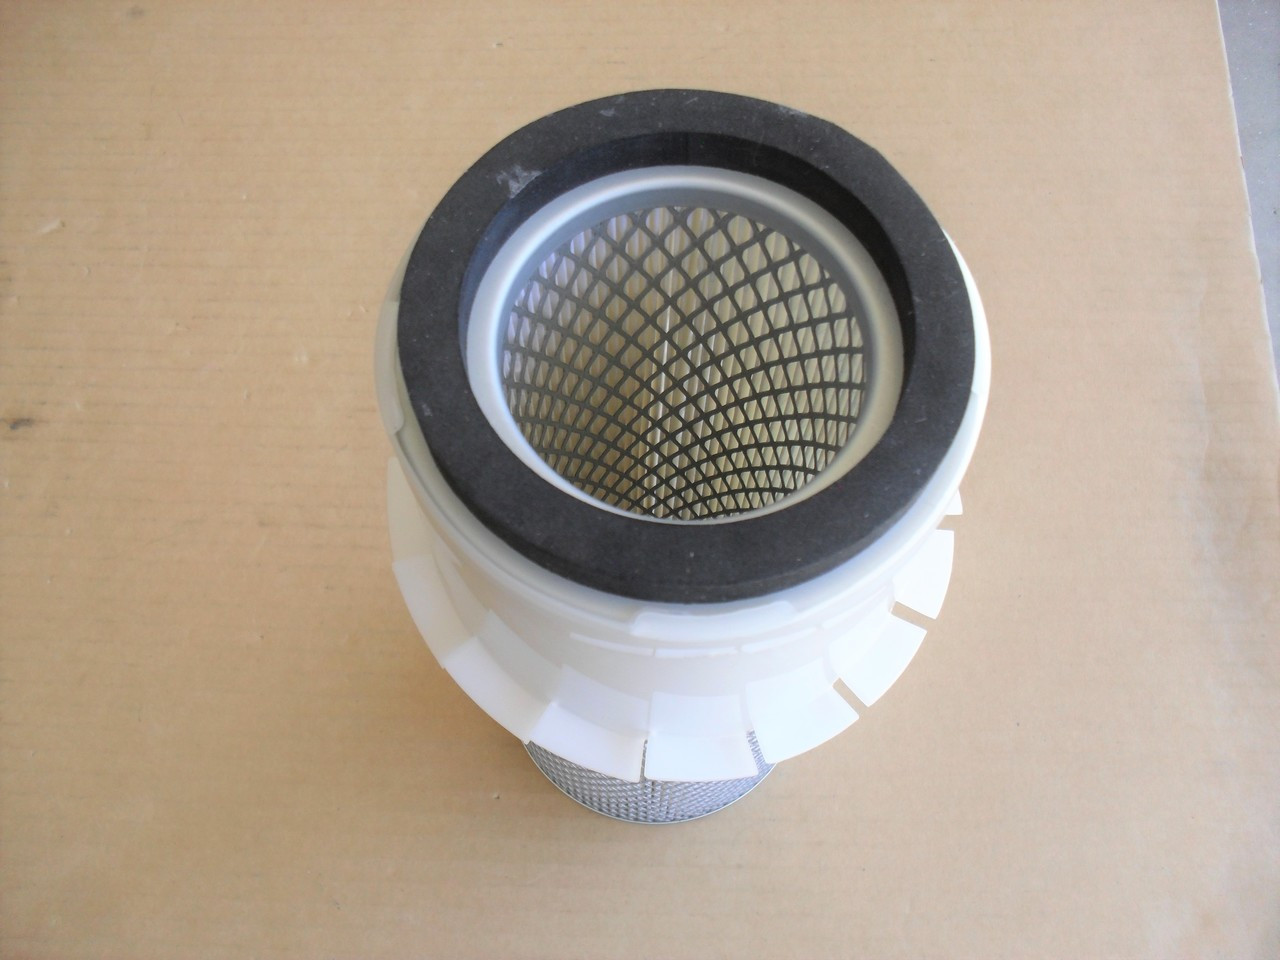 Air Filter for Ditchwitch 2300, 2310, 3210, R30, R40, V30, 195682, 195-682